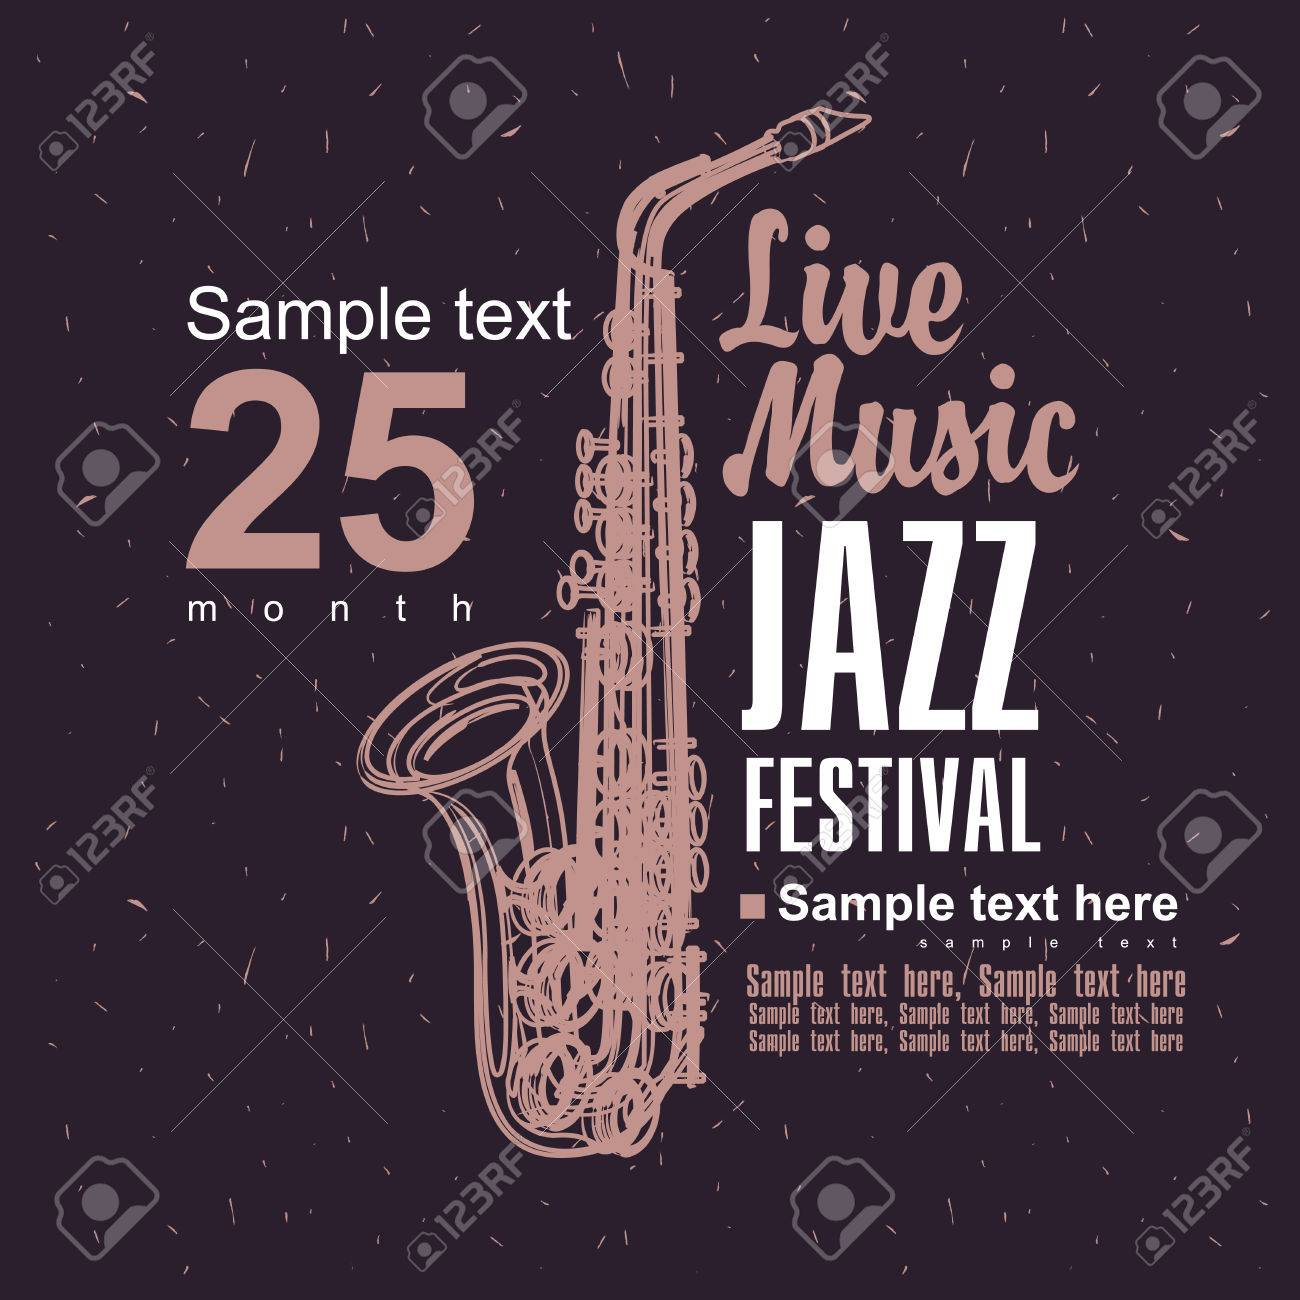 Music poster with a picture of a saxophone jazz festival - 40624234